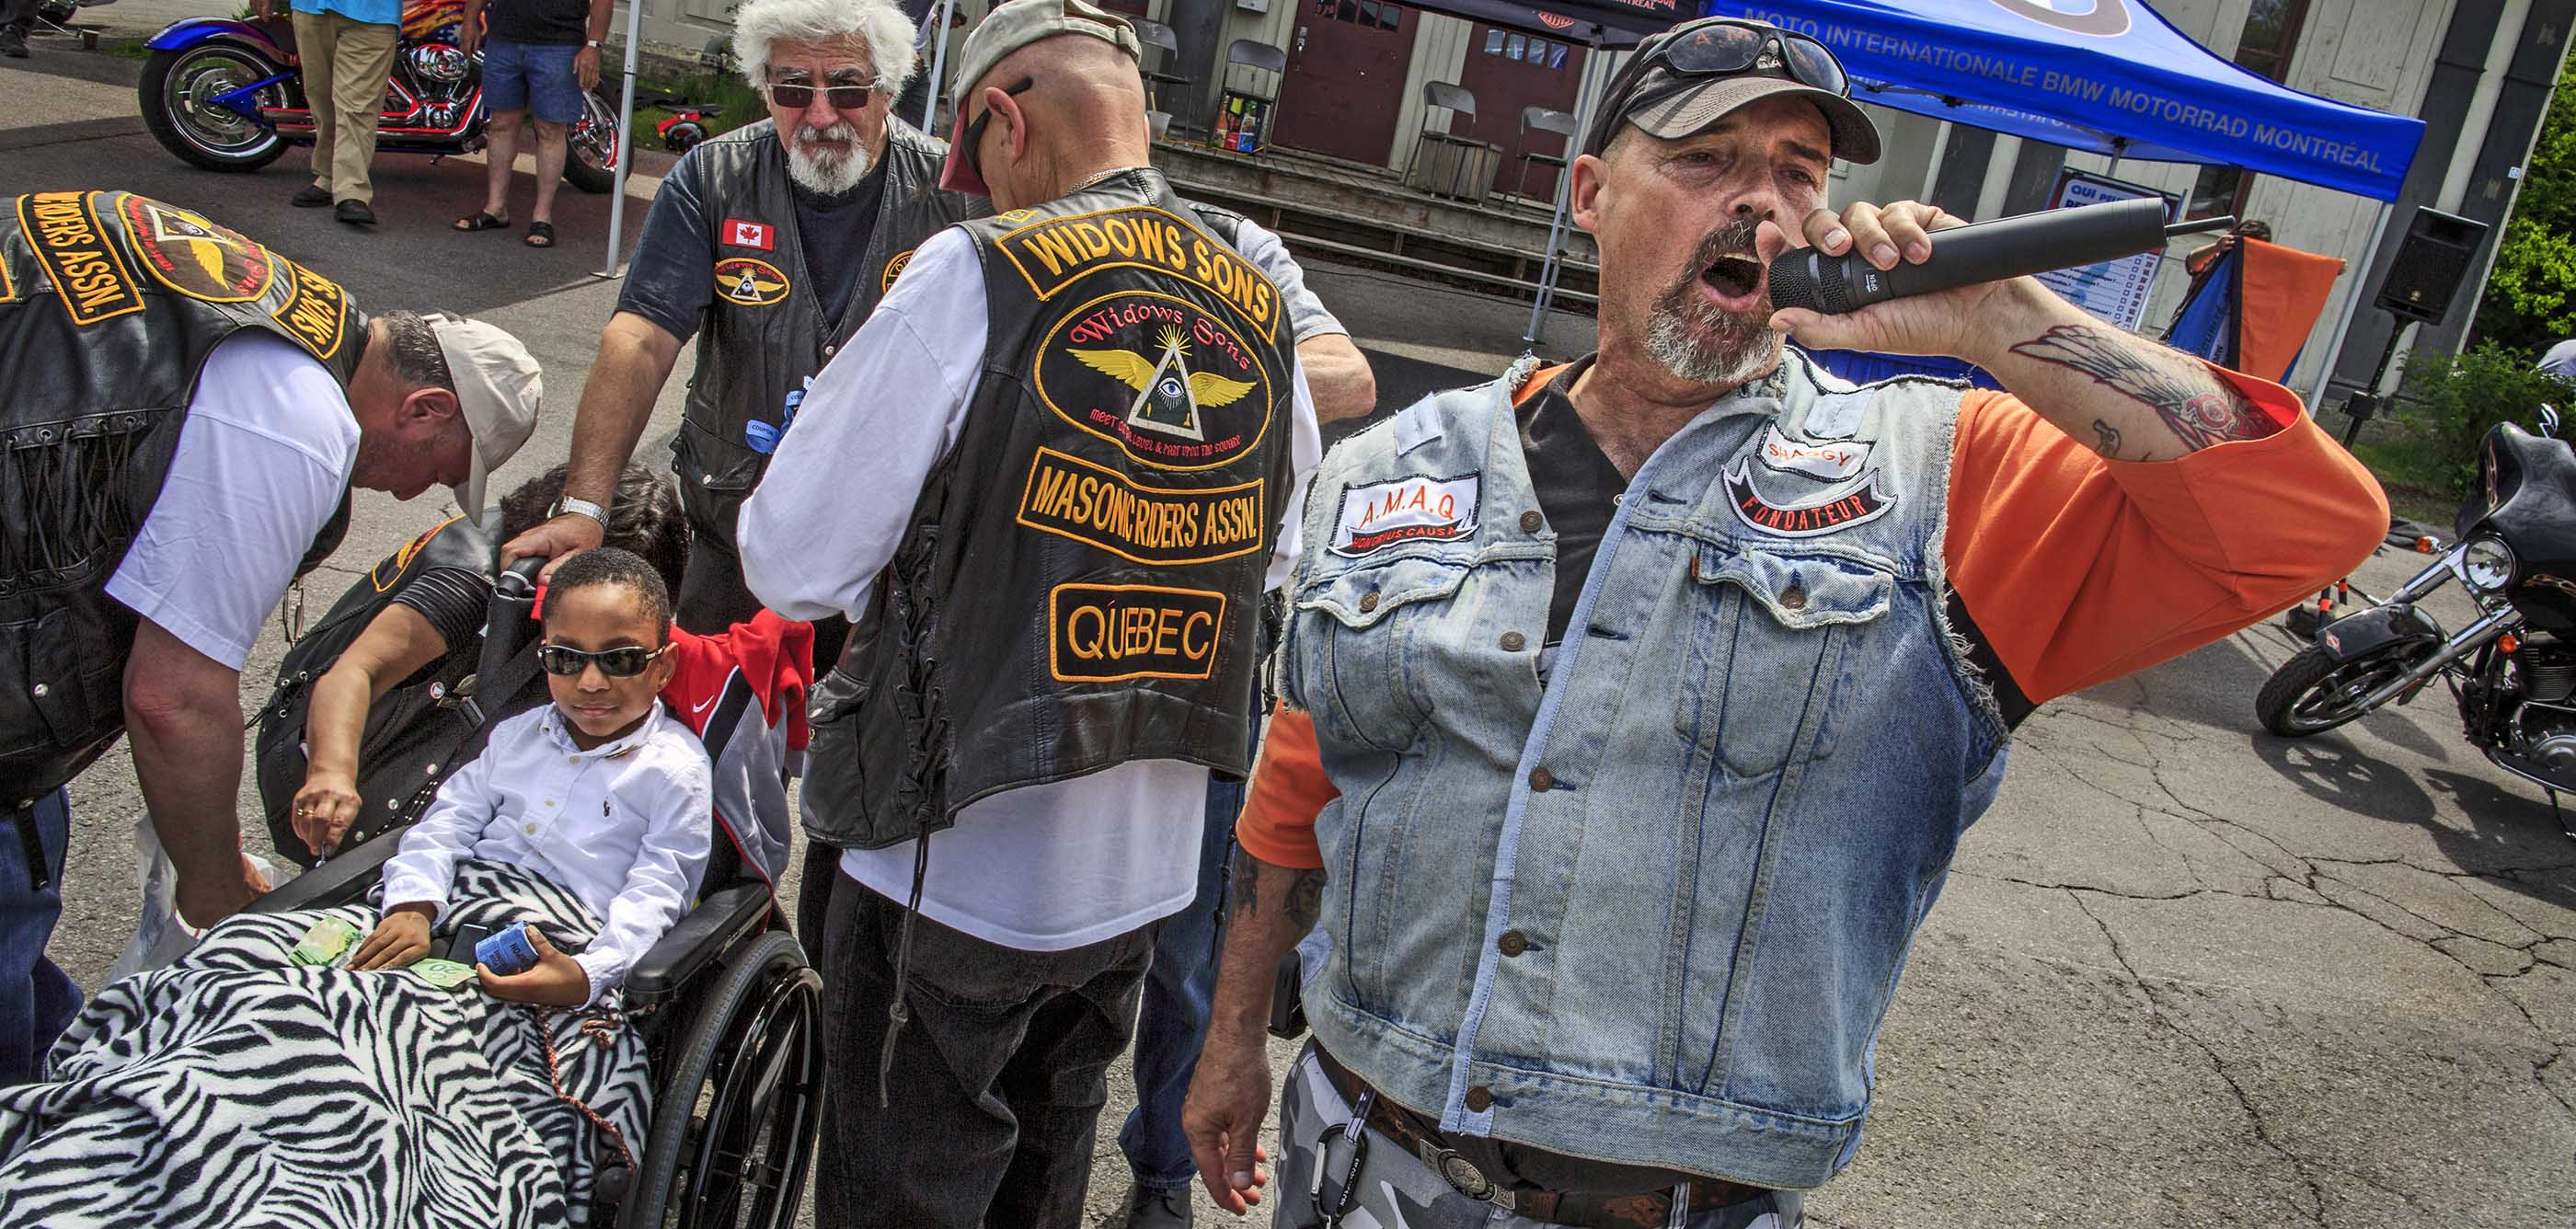 BIKERS JESUS PRAYER PRIEST MONTREAL CHILDREN FREEMASSONS MOTOCYCLES BIKES TATOOS STORY HOSPITAL RIDE WIDOWS SONS Photoreport MICHAEL MONNIER